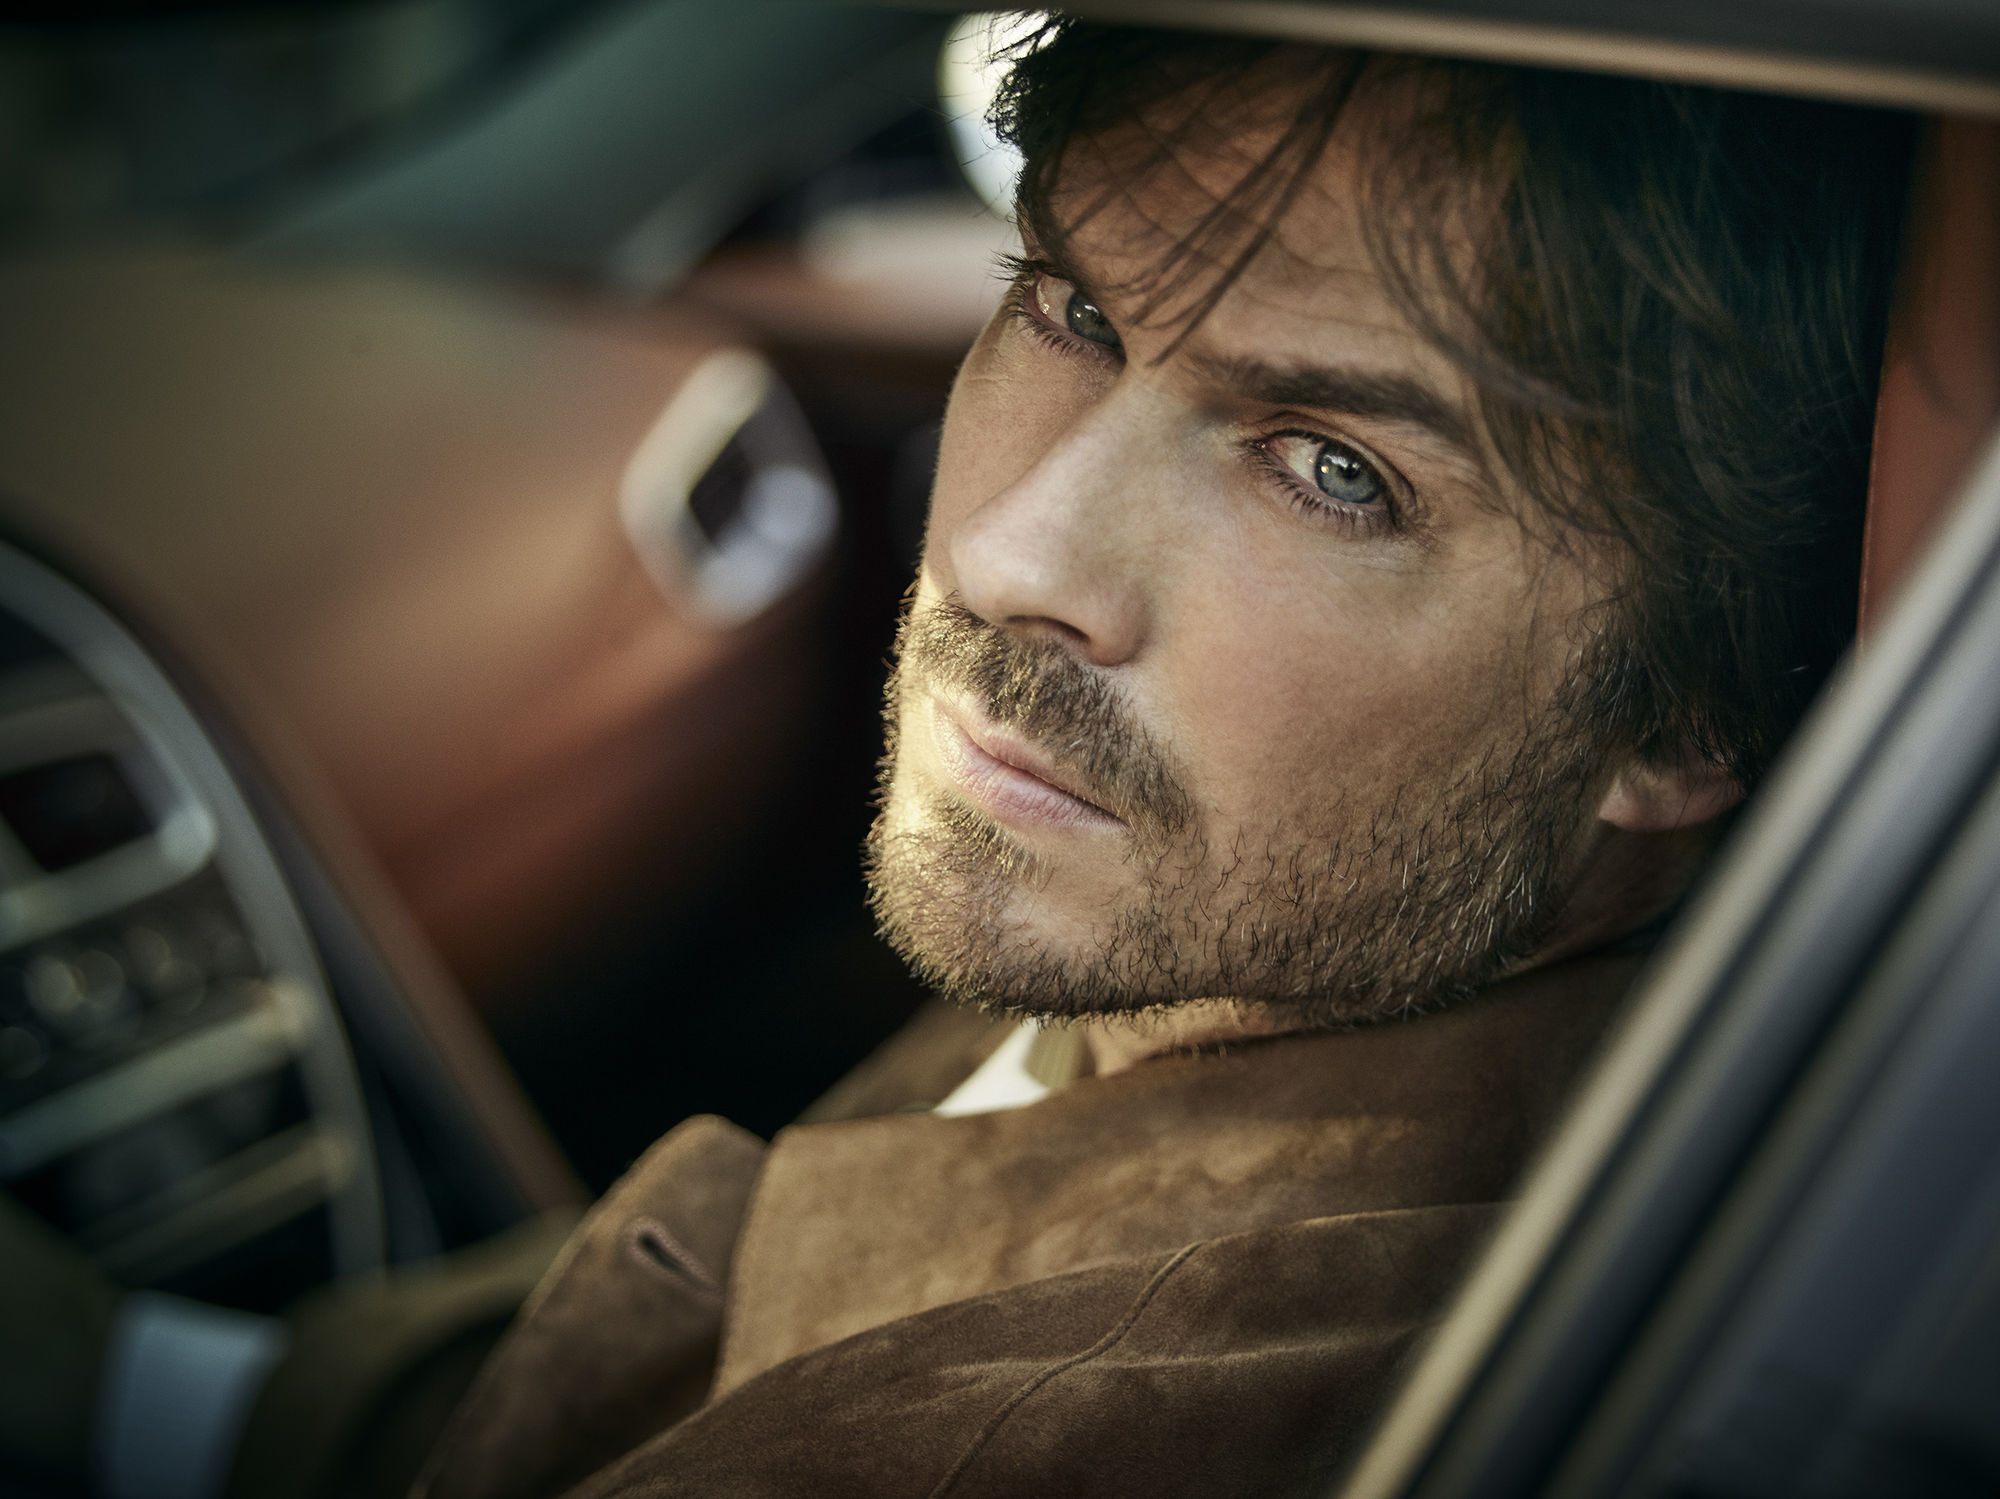 SEVERIN WENDELER: NOBLEMAN Cover shoot of Ian Somerhalder. Portrait by Robert Ascroft c/o Severin Wendeler